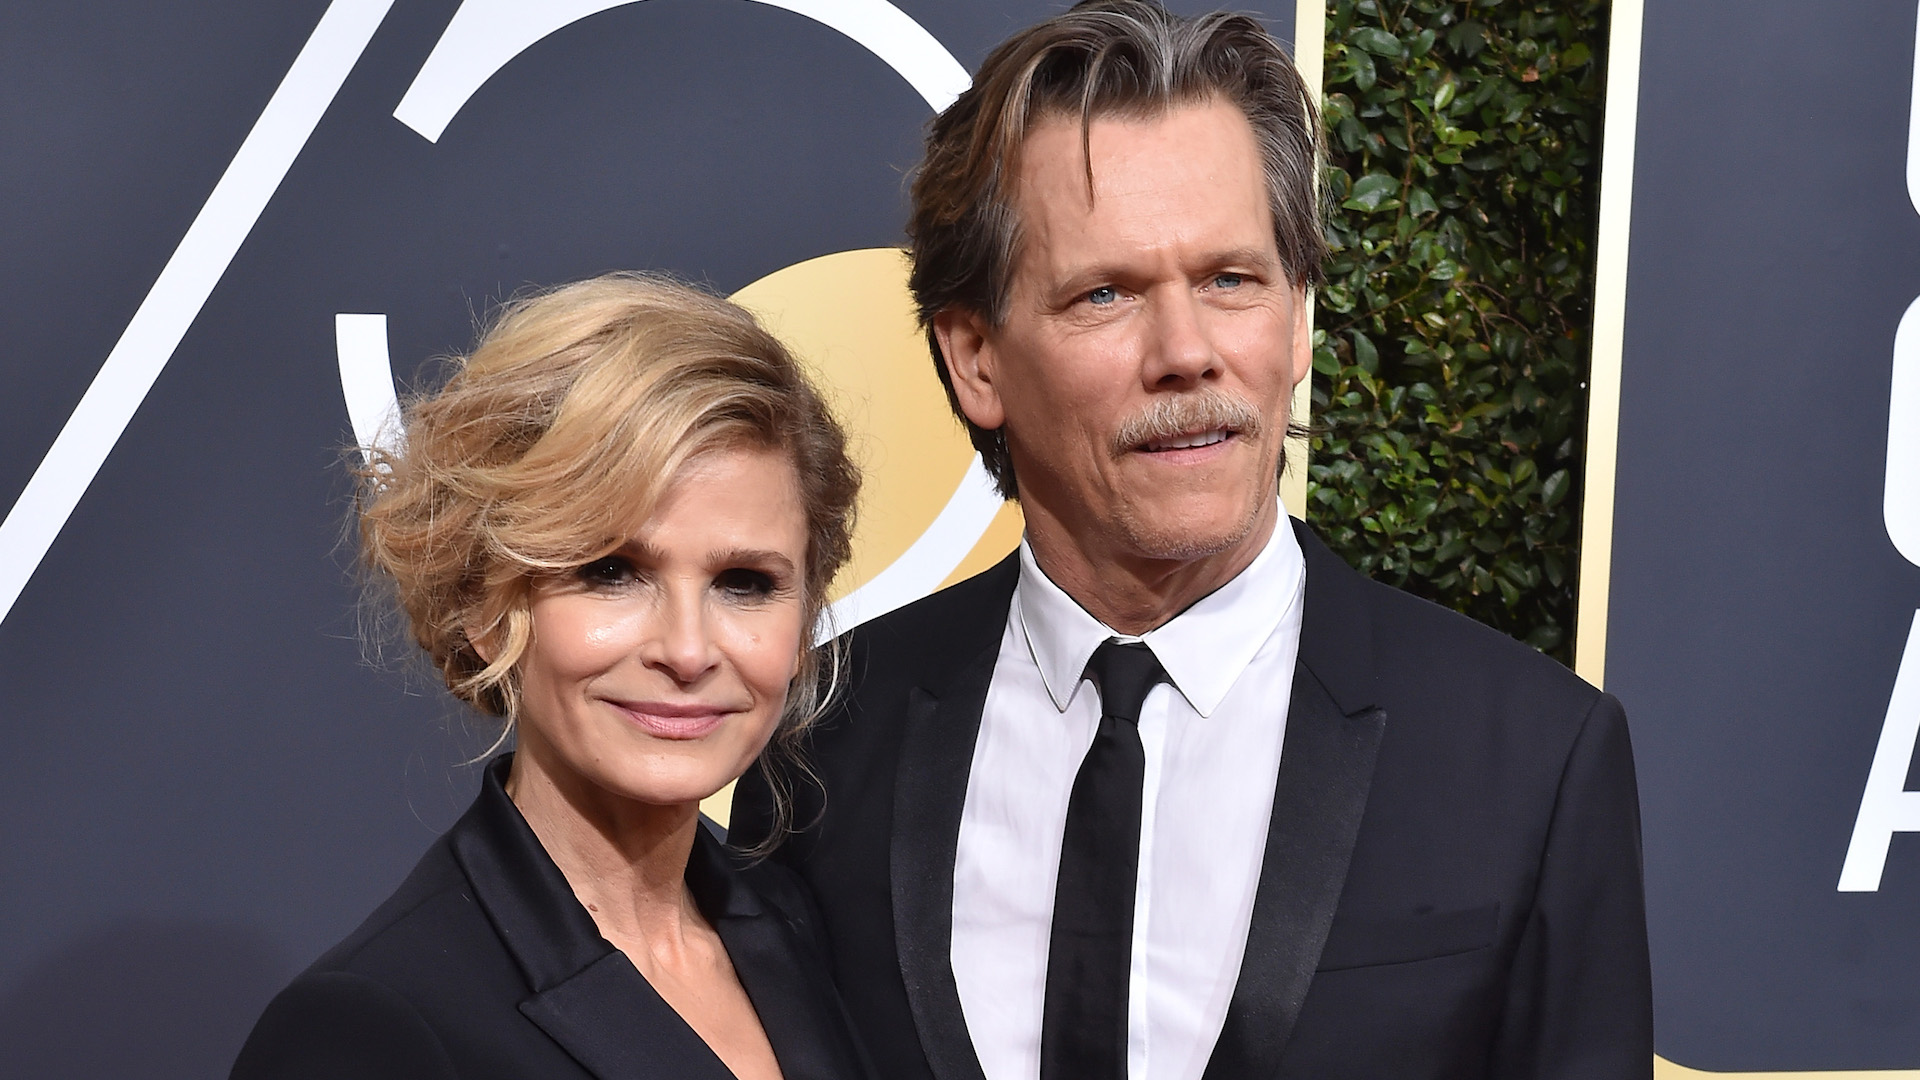 Kyra Sedgwick And Kevin Bacon Attend Image Axelle Bauer Griffin Filmmagic Getty Images